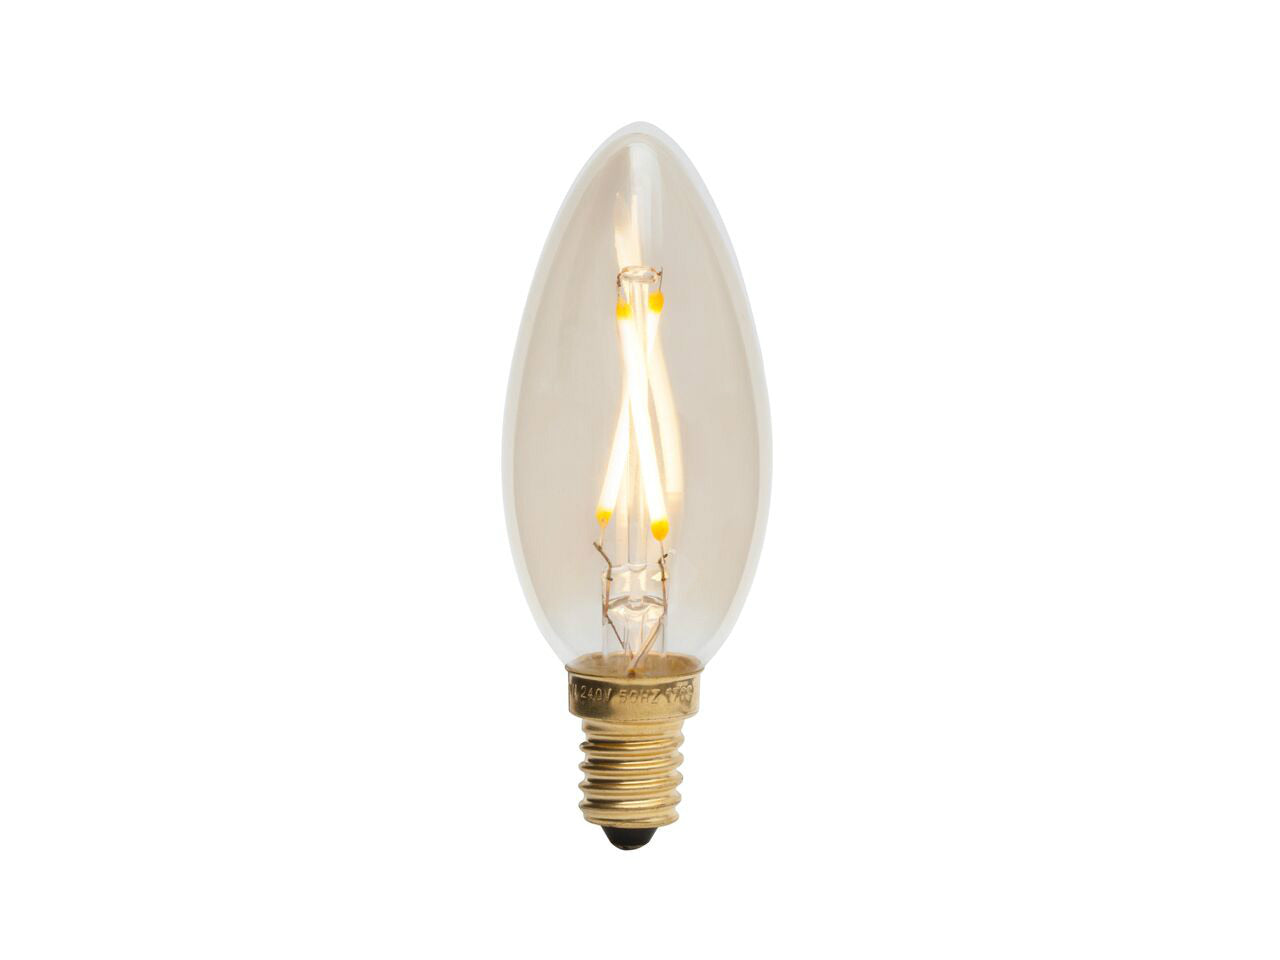 CHASE & SORENSEN CANDLE LED bulb by Tala